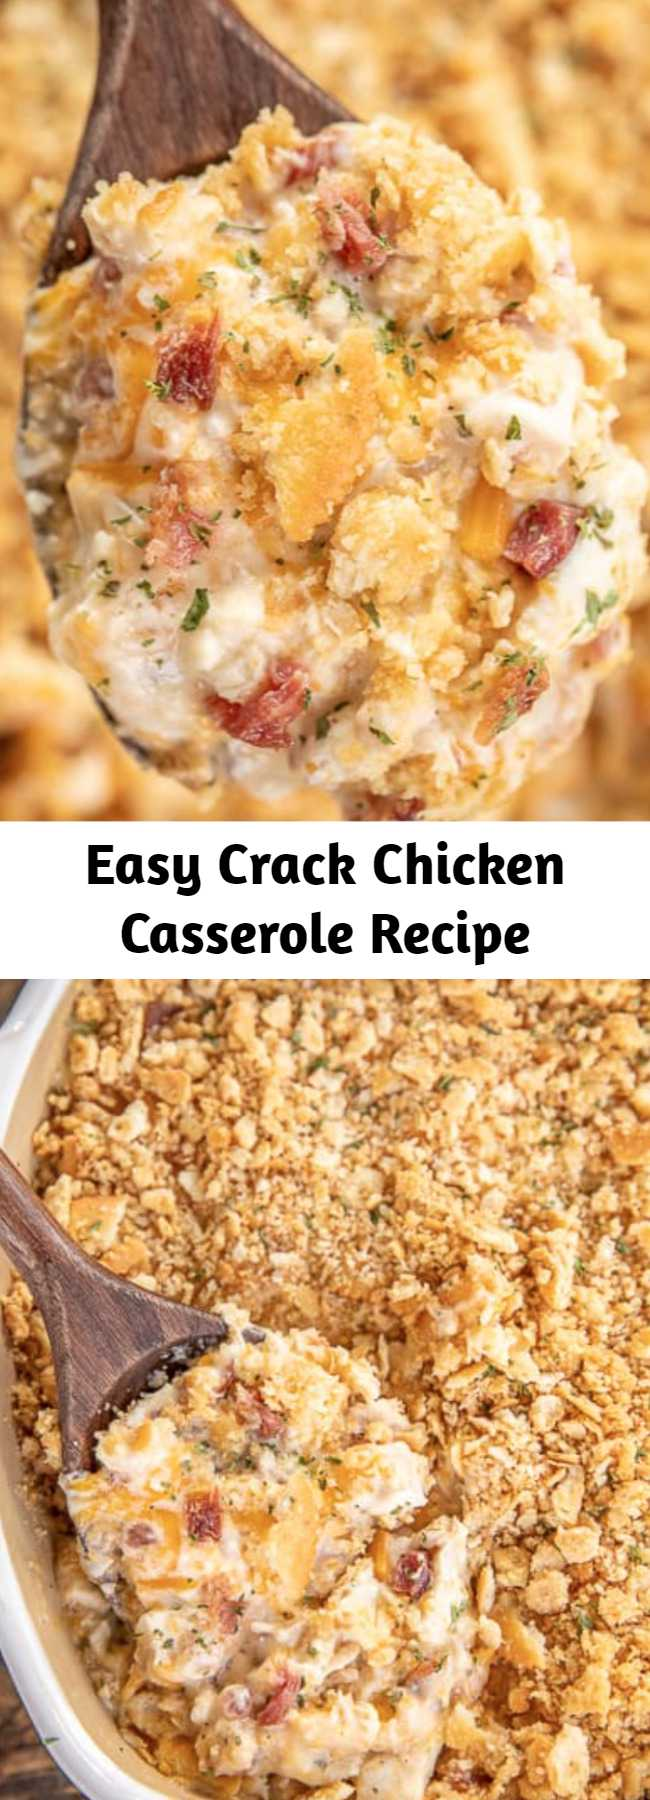 Easy Crack Chicken Casserole Recipe - creamy chicken casserole loaded with cheddar, bacon and ranch. Use a rotisserie chicken for easy prep! Chicken, cheddar, bacon, ranch seasoning, sour cream, cream of chicken soup. The whole family LOVED this easy chicken casserole. It is already on the menu again this week! #chicken #casserole #chickencasserole